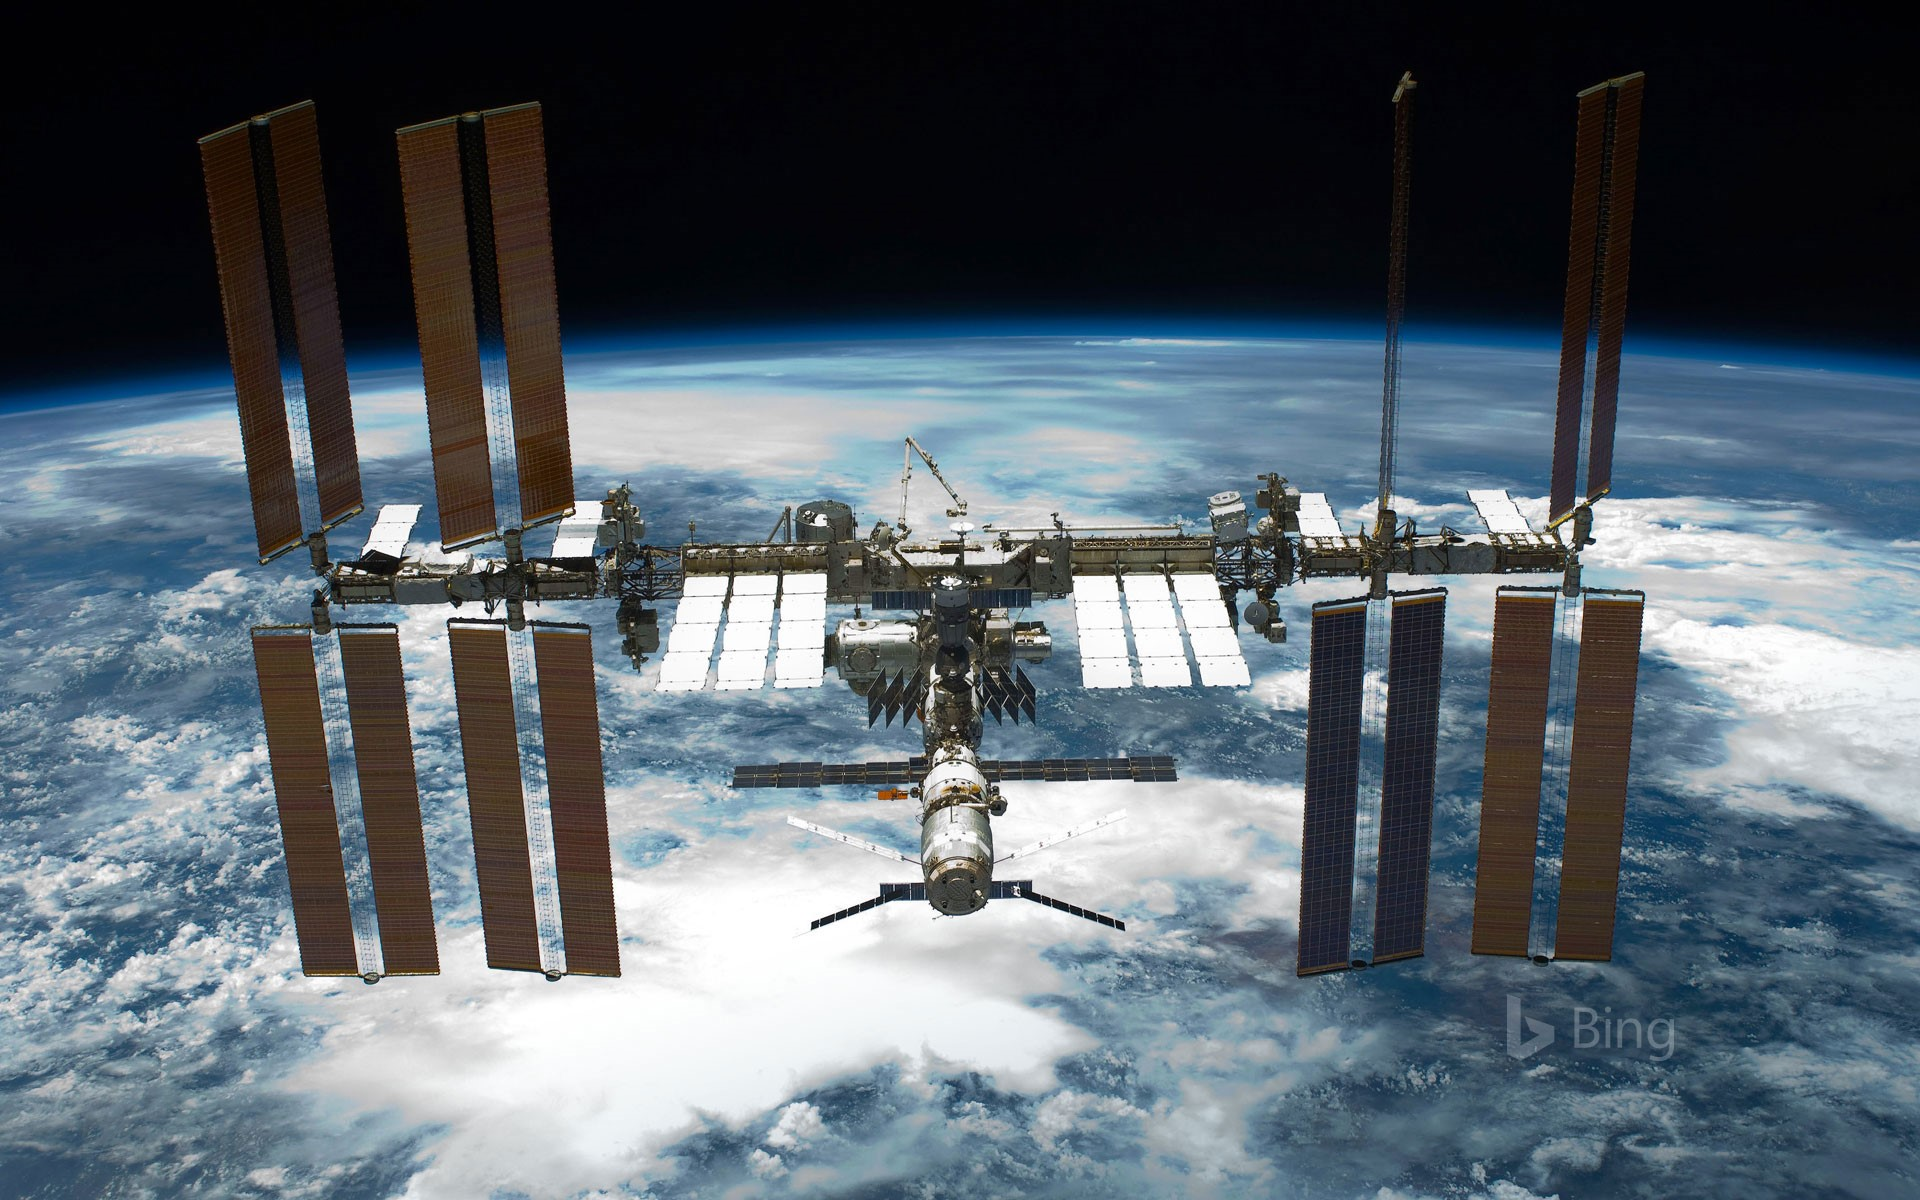 The International Space Station seen from Space Shuttle Endeavour